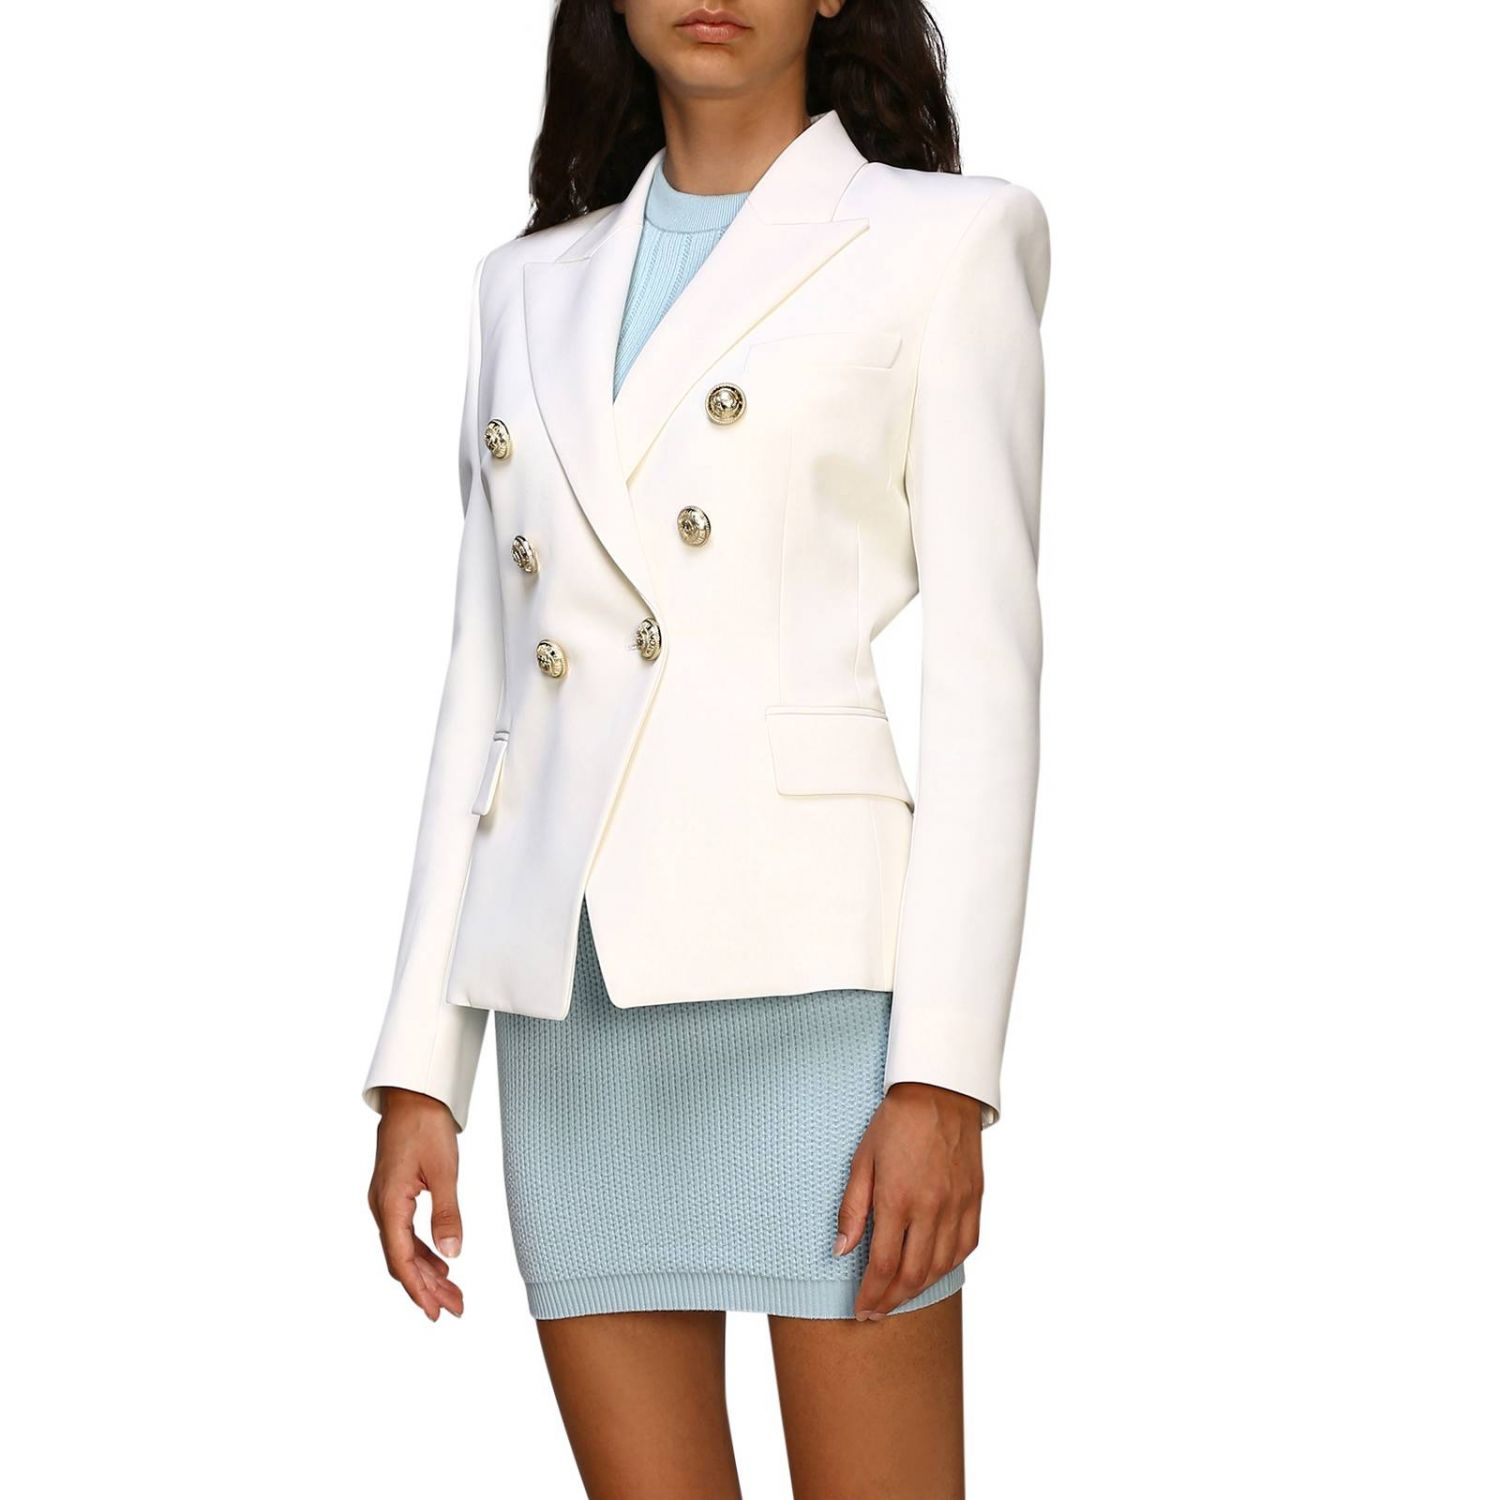 Jacket Balmain: Balmain double-breasted wool blazer with jewel buttons white 4